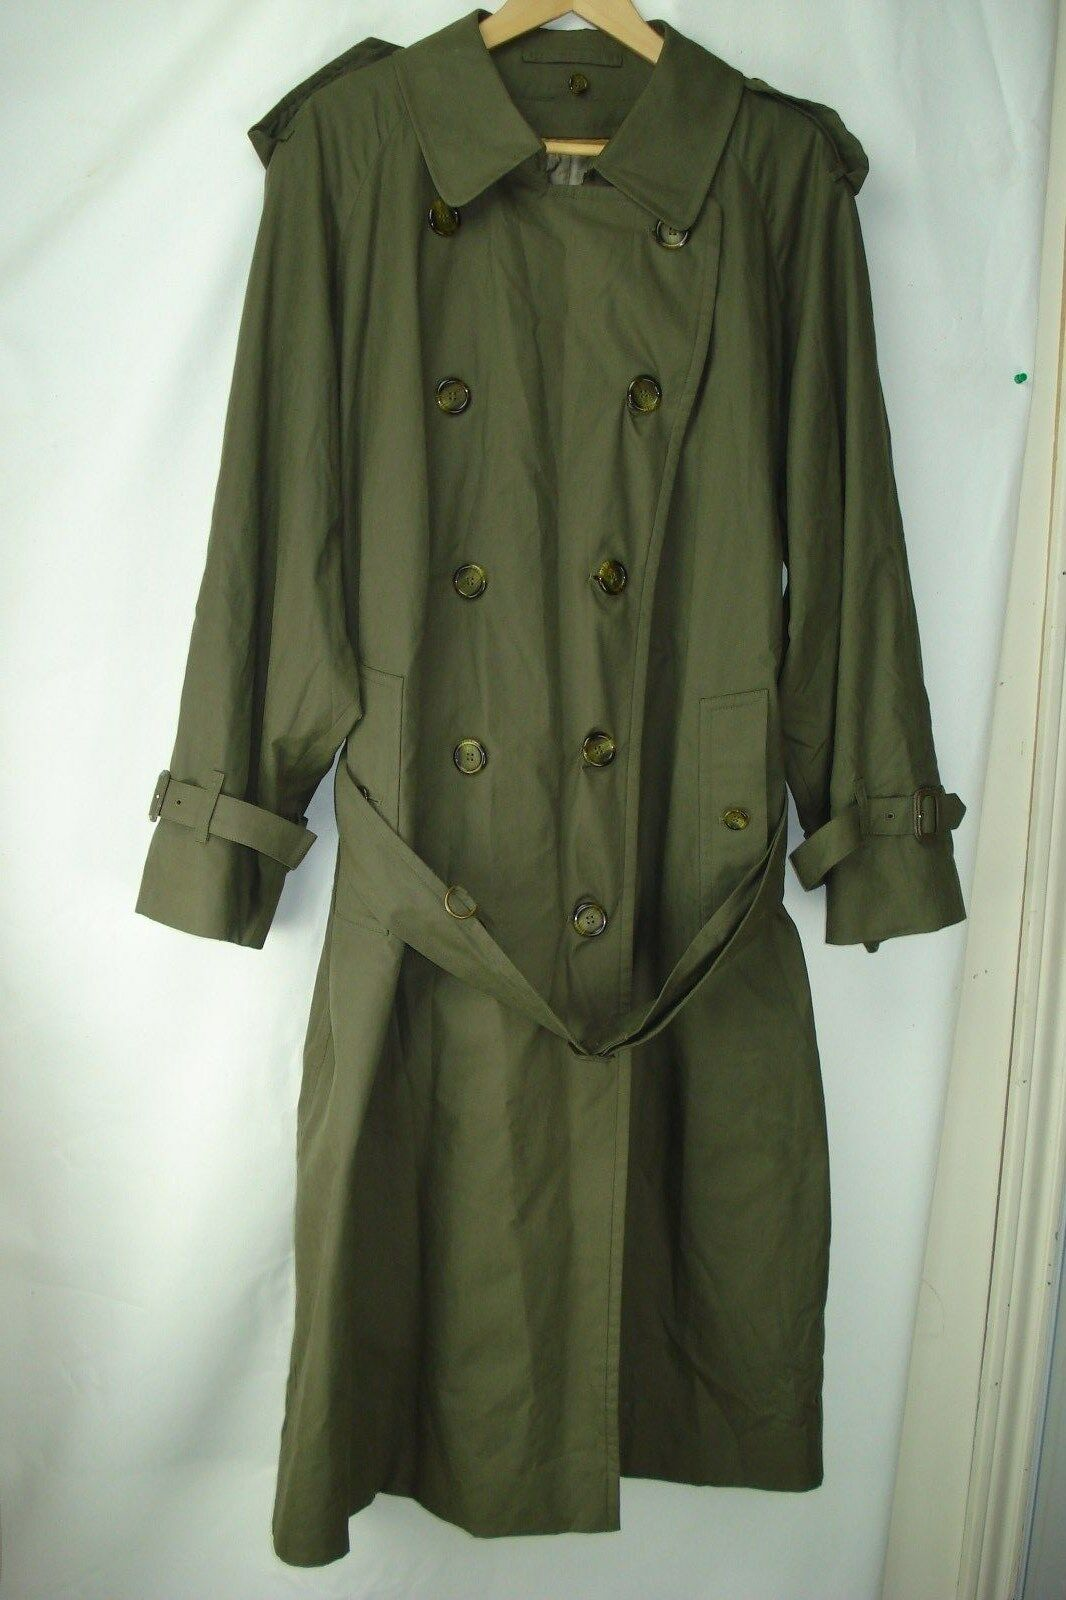 'BURBERRYS' OF LONDON OLIVE GREEN MEN'S LONG TRENC